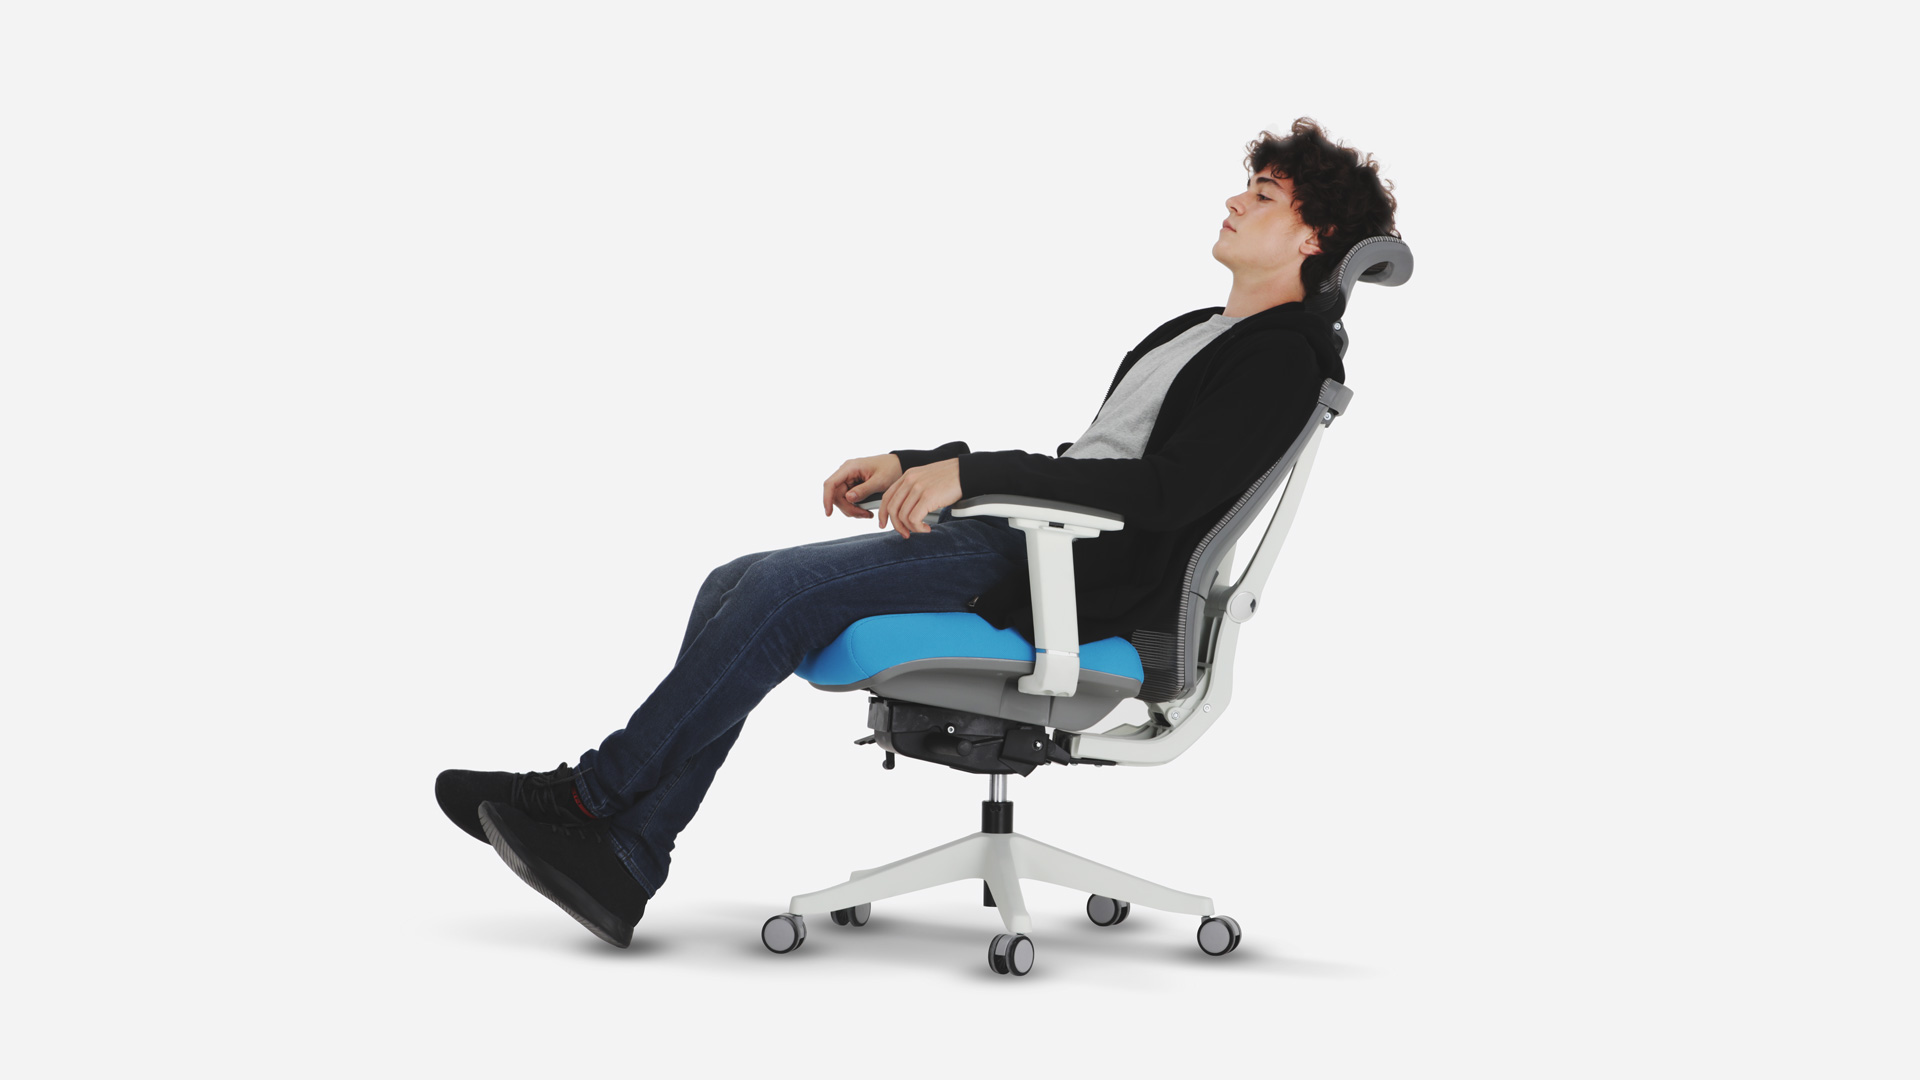 Best Ergonomic Office Chair Compare The Best Ergonomic Office Chairs Autonomous Ergochair 2